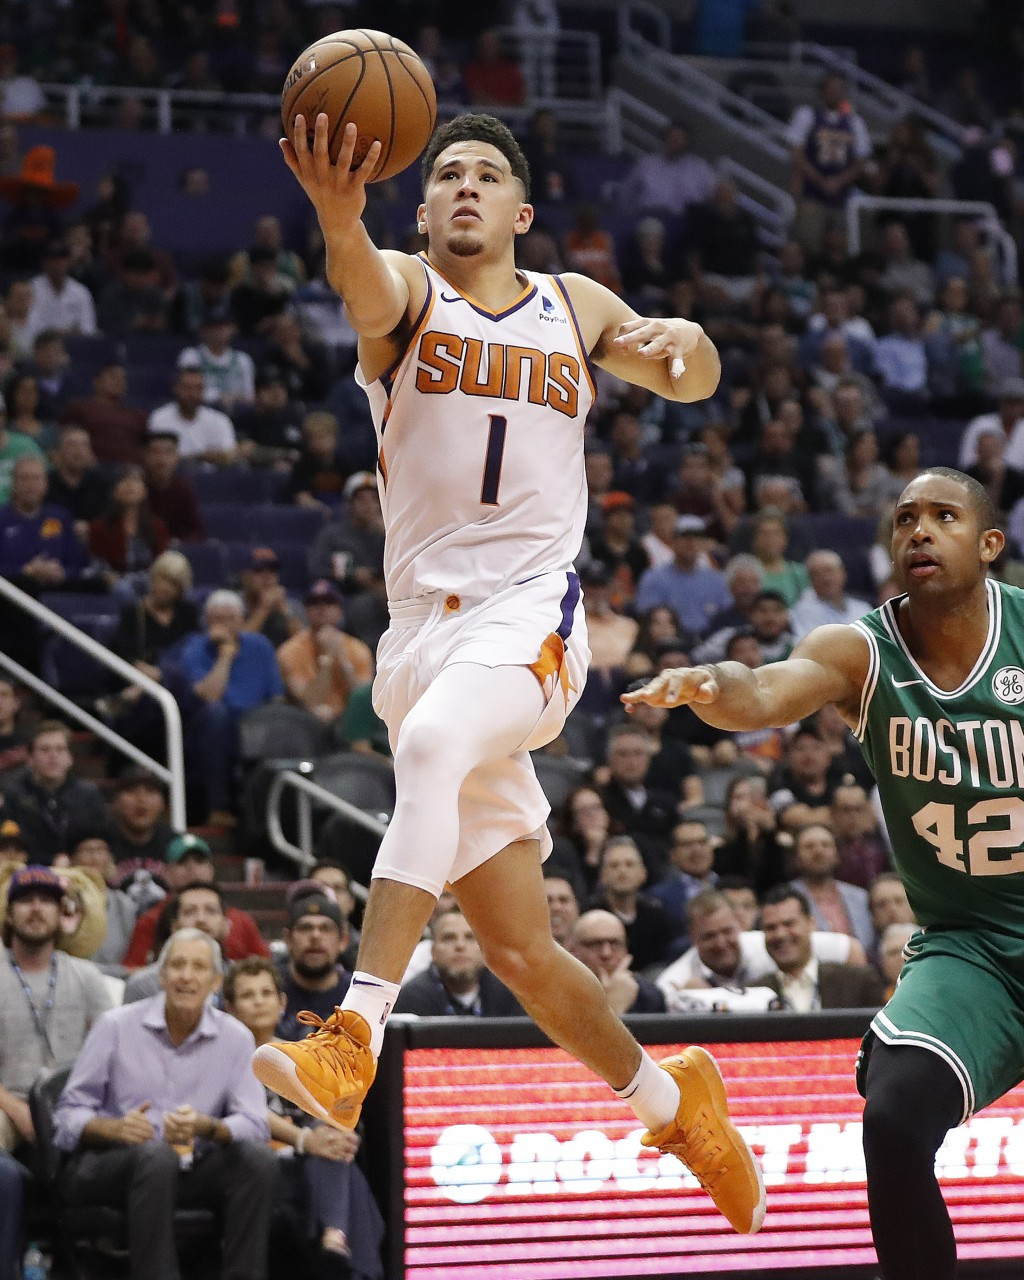 Phoenix Suns guard Devin Booker (1) shoots against the Boston Celtics during the second half of an NBA basketball game Thursday, Nov. 8, 2018, in Phoe